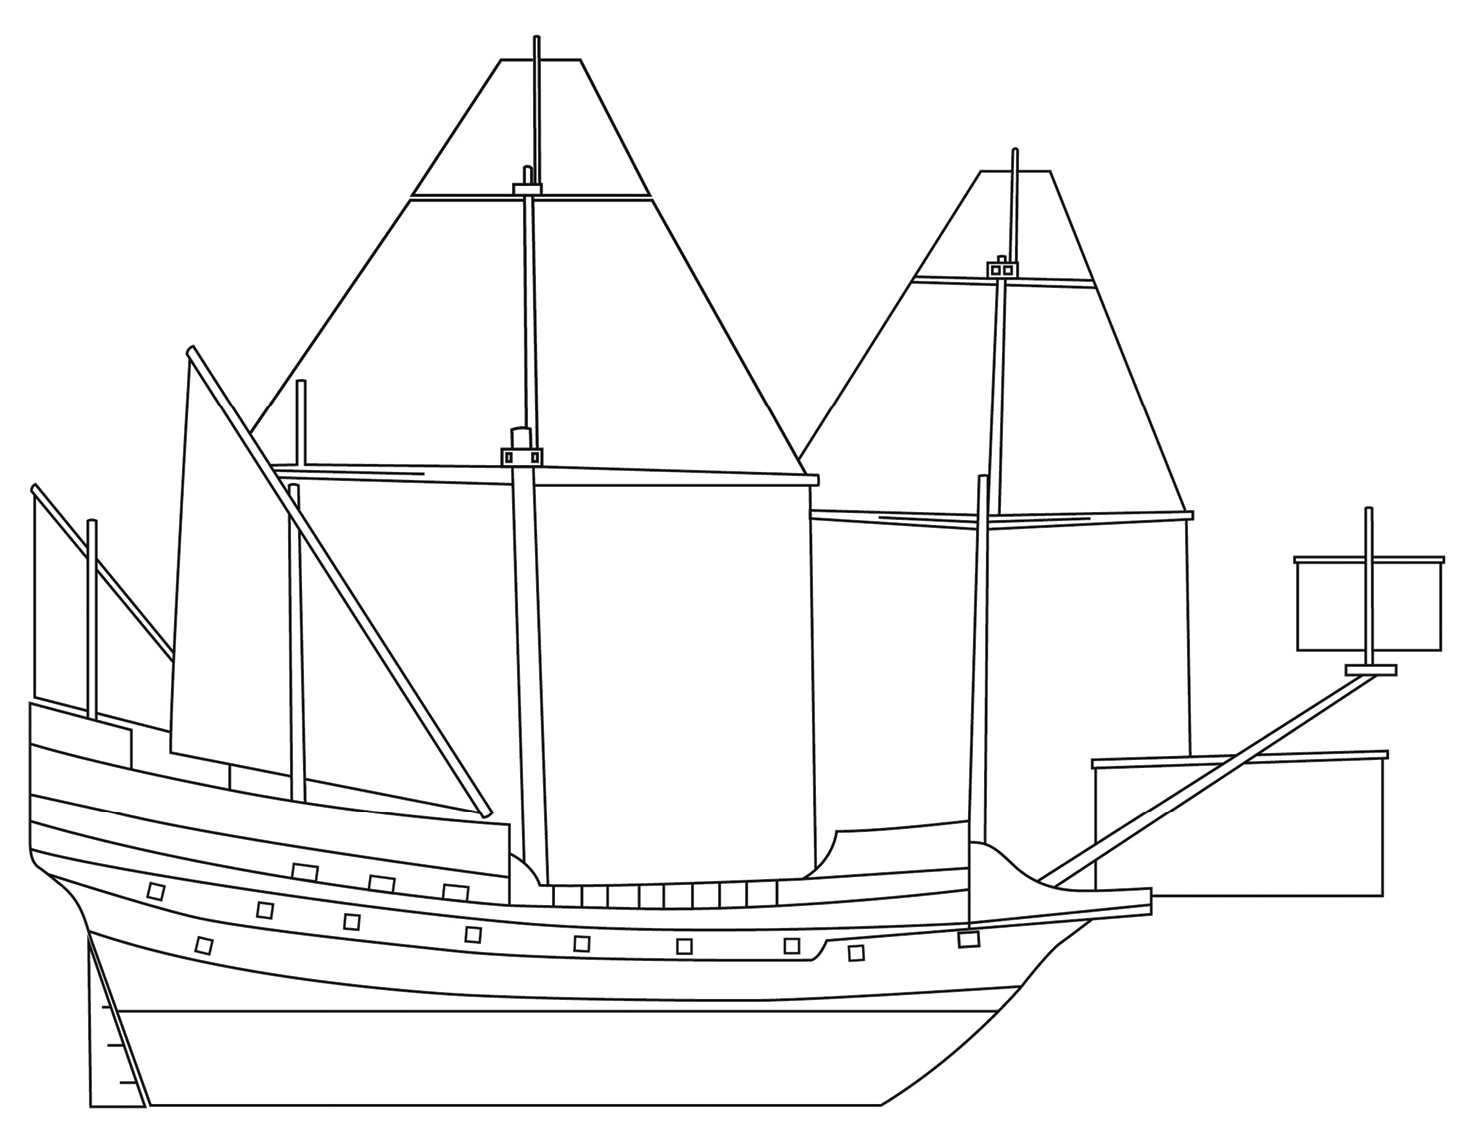 RIGHT A drawing of what an English East India Company ship may have looked like in the early 1600s. In addition to the four masts, there was another small square sail attached to the bowsprit (the timber running out from the bow of the ship), which was used to help the ship turn.